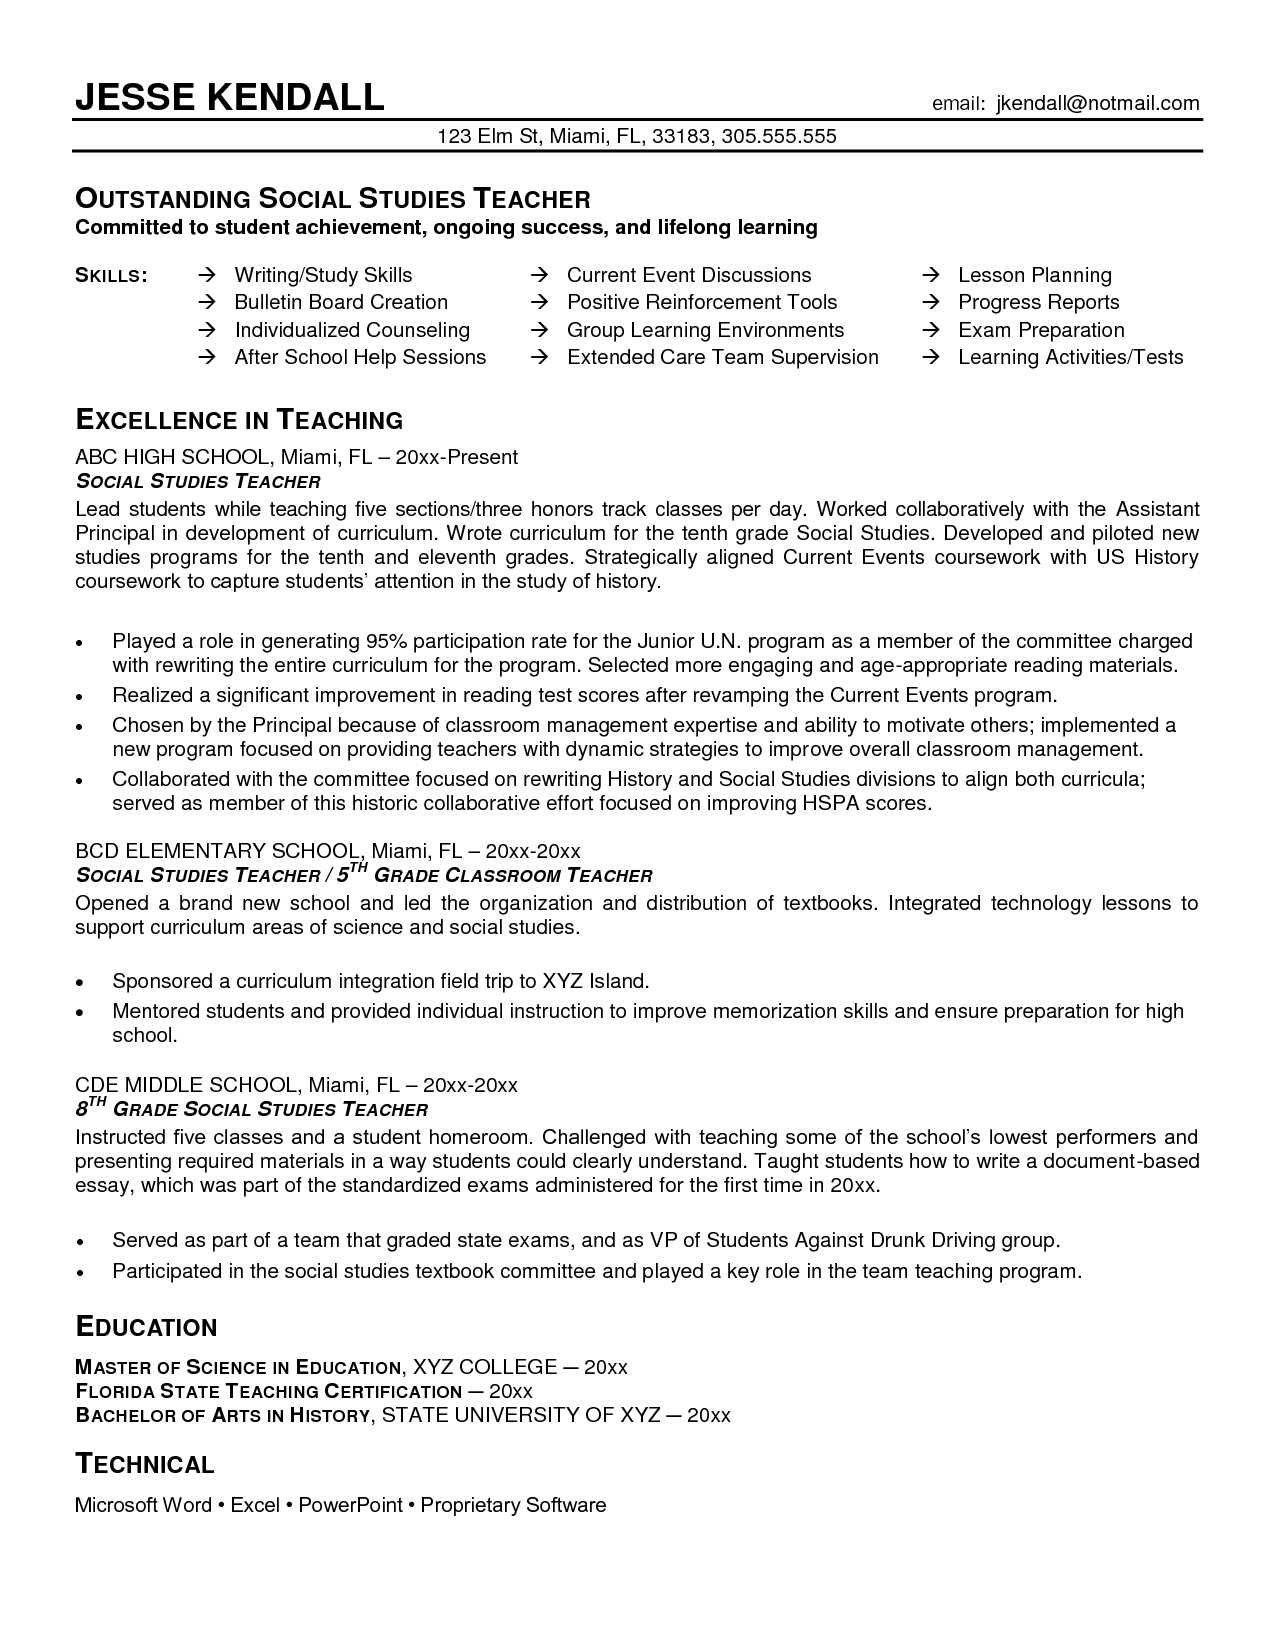 history teacher sample resume - google search | work | sample resume